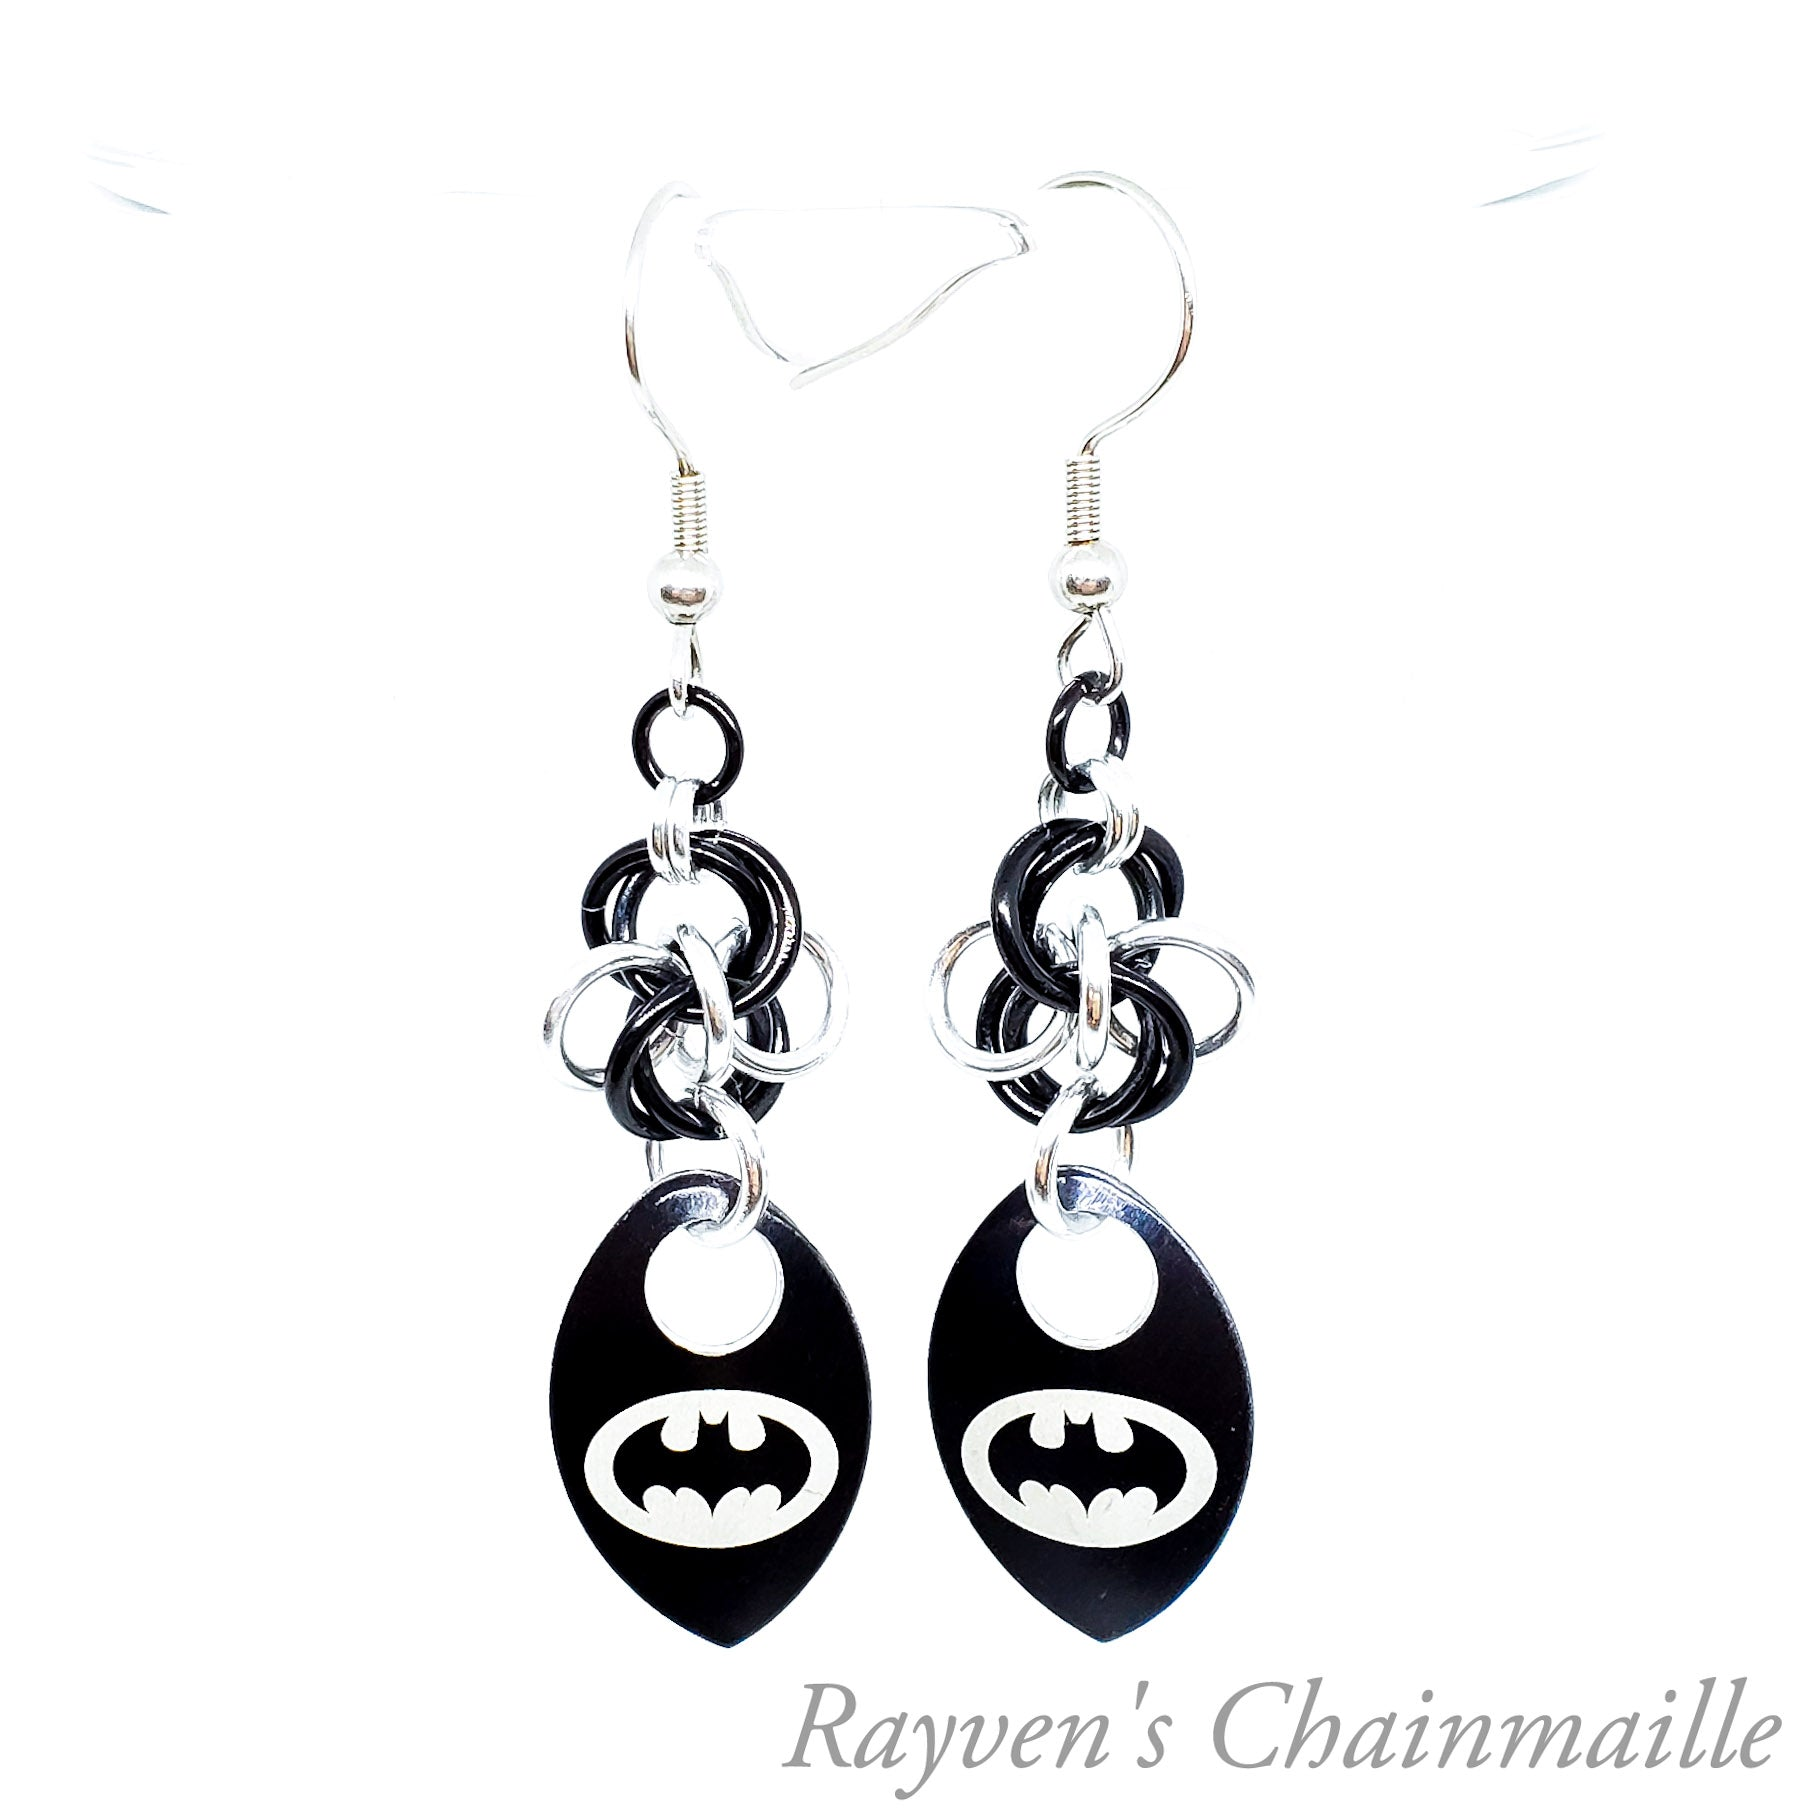 Batman Signal scalemaille chainmail earrings - Rayven's Chainmaille